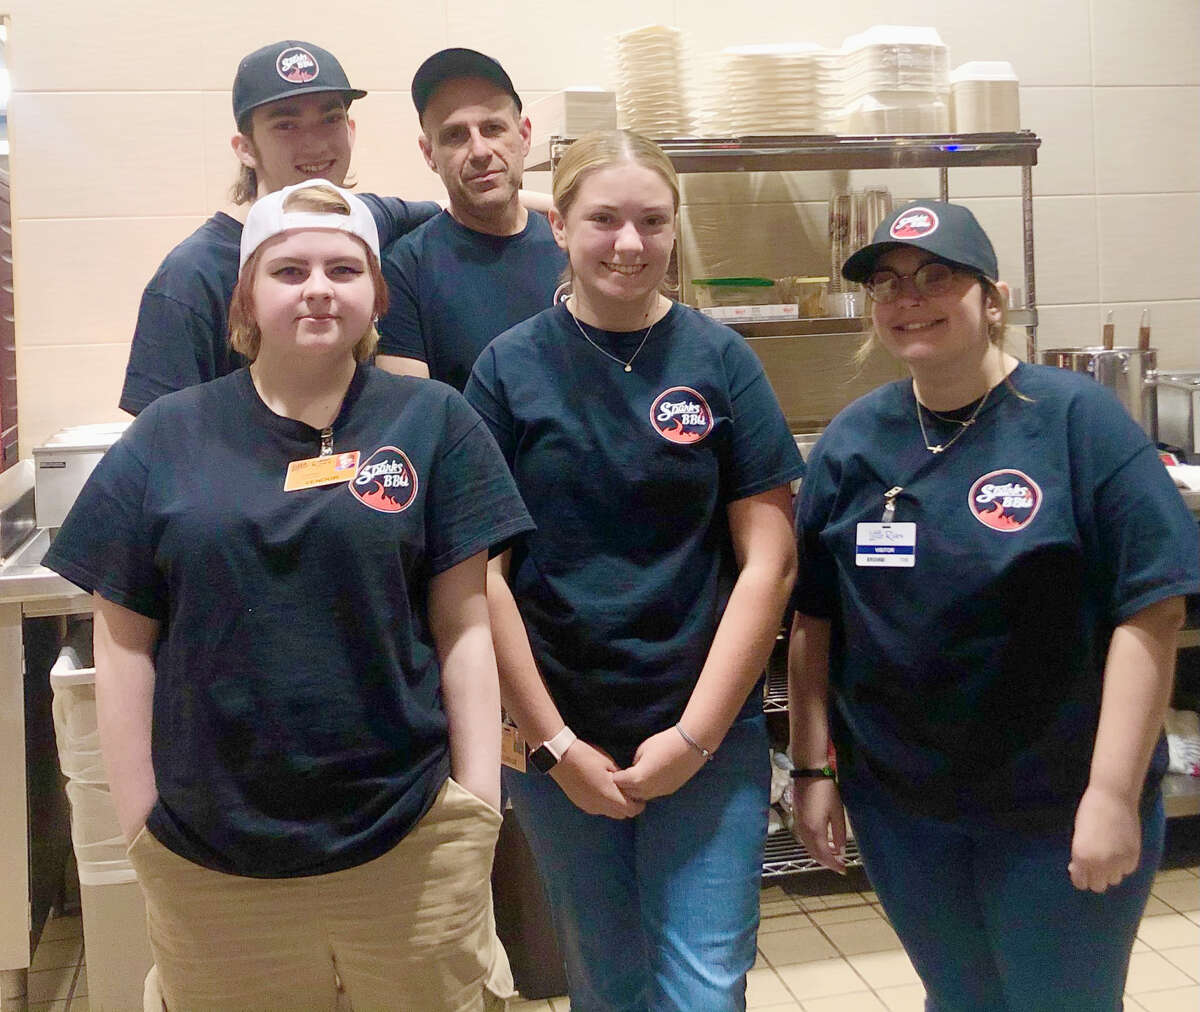 Sparks BBQ is located inside the Little River Casino Resort. Pictured are employees (front row, left to right) Jordan Wood, Emalyn Nelson, Keegan Gramza; (back row) Andrew Rabb and Andy Didato.